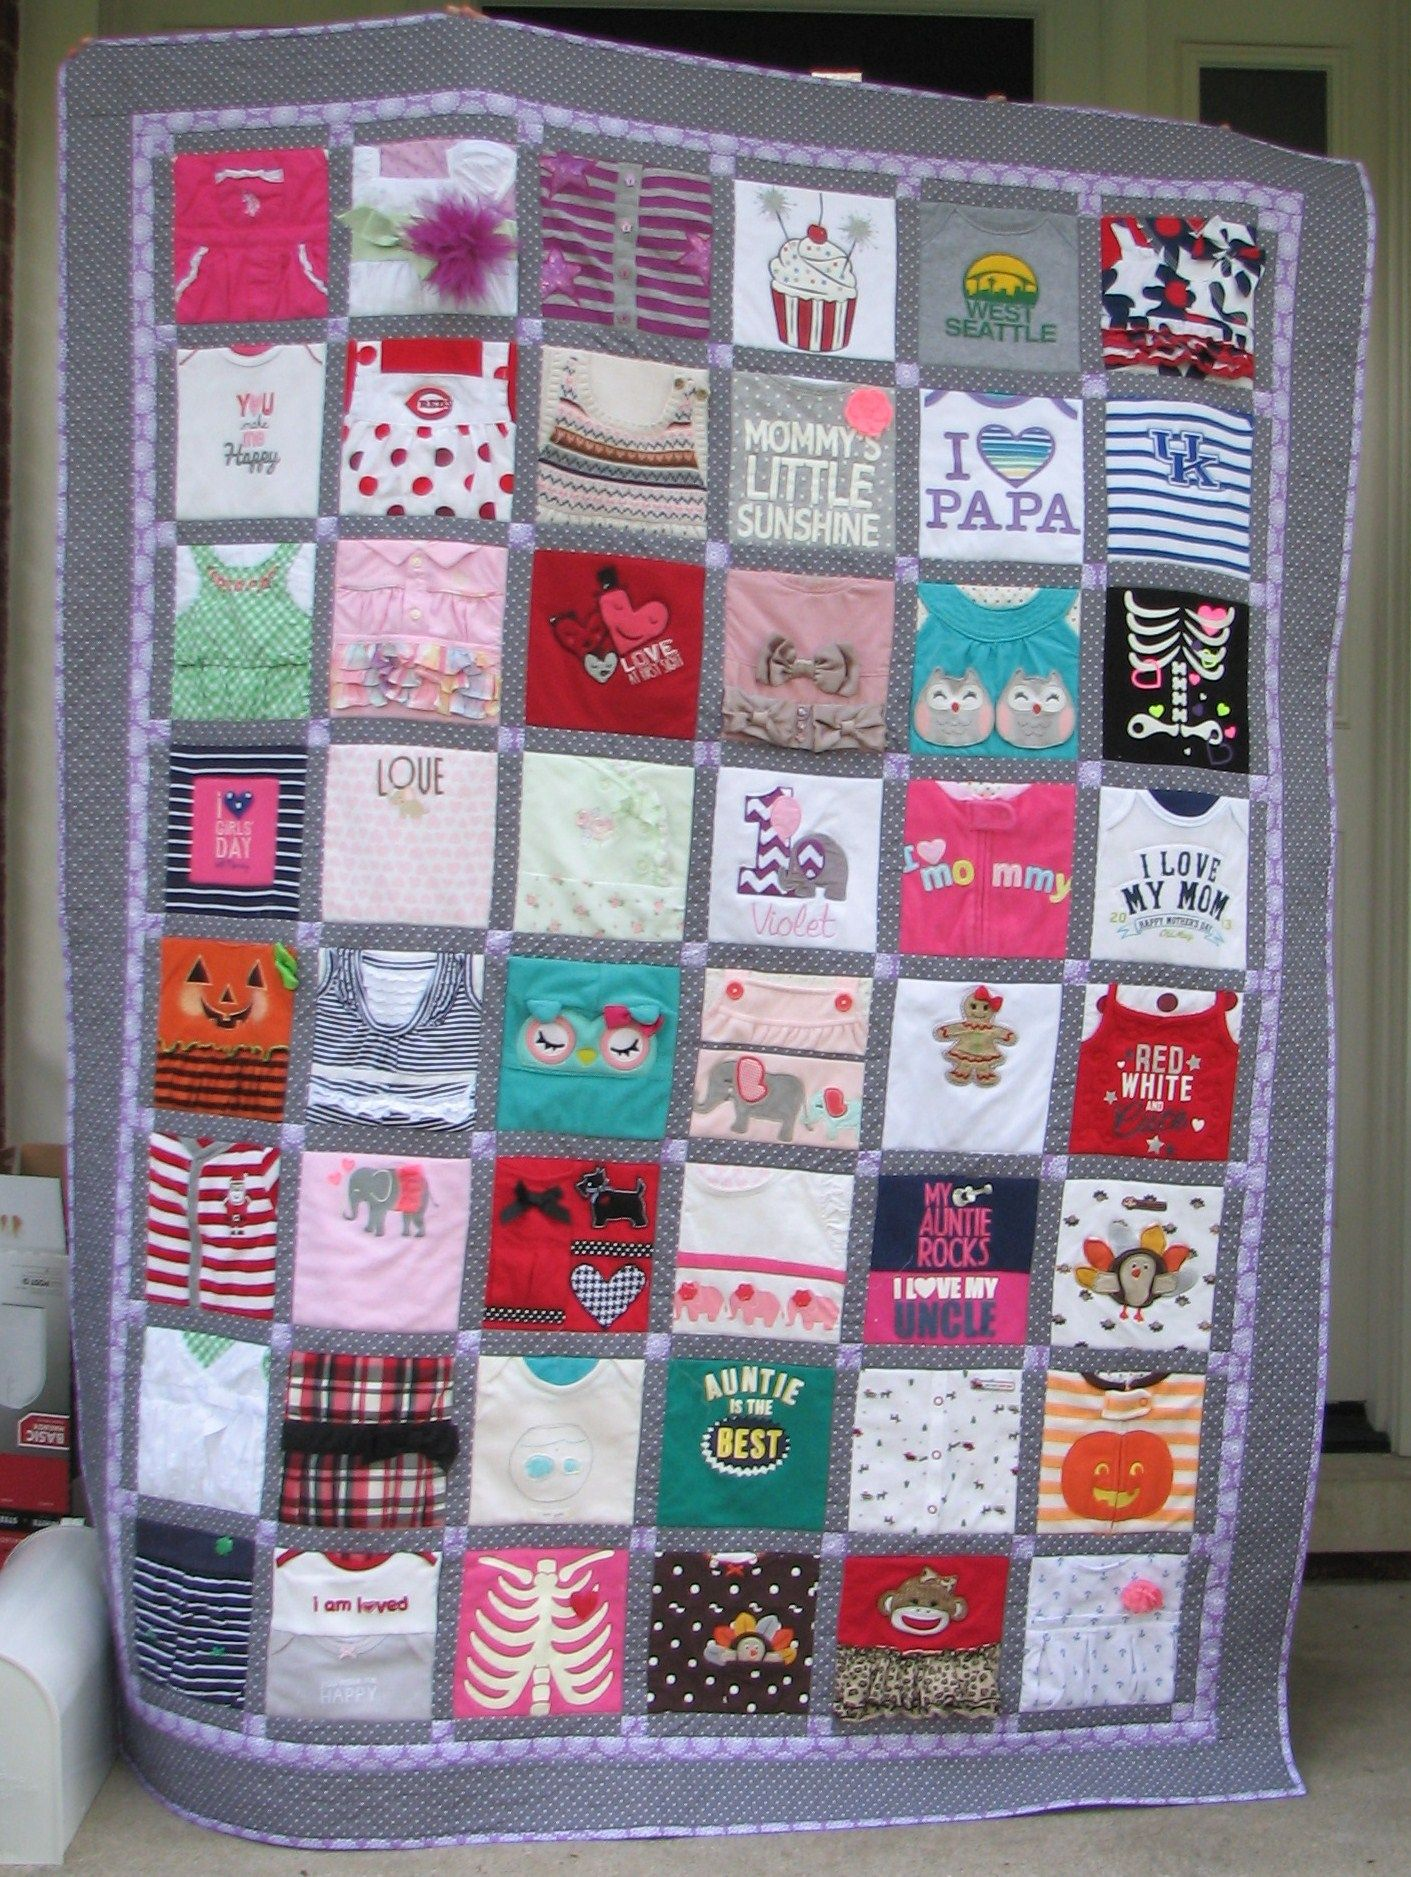 baby clothes quilt - Google Search | quilting 16 | Pinterest ... : custom baby clothes quilt - Adamdwight.com